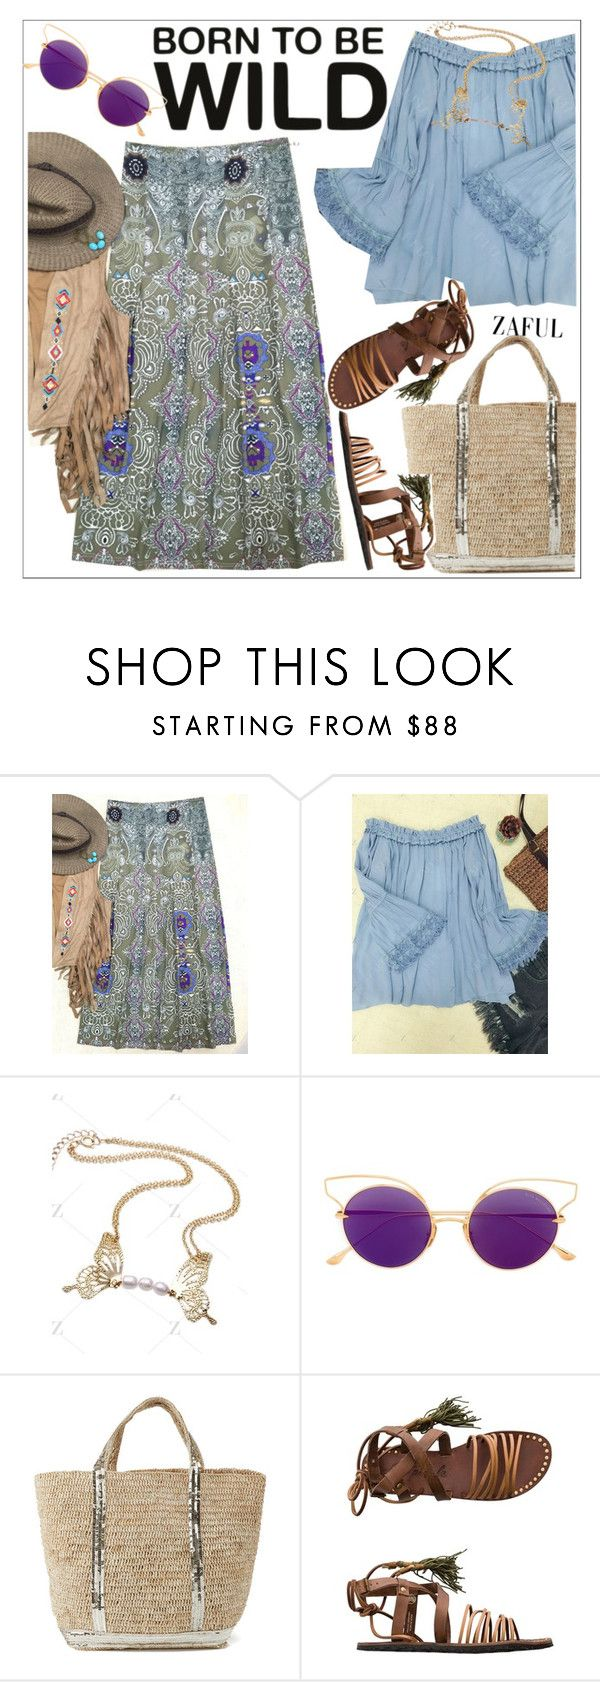 """""""Zaful"""" by teoecar ❤ liked on Polyvore featuring Dita, Vanessa Bruno Athé, Free People and zaful"""